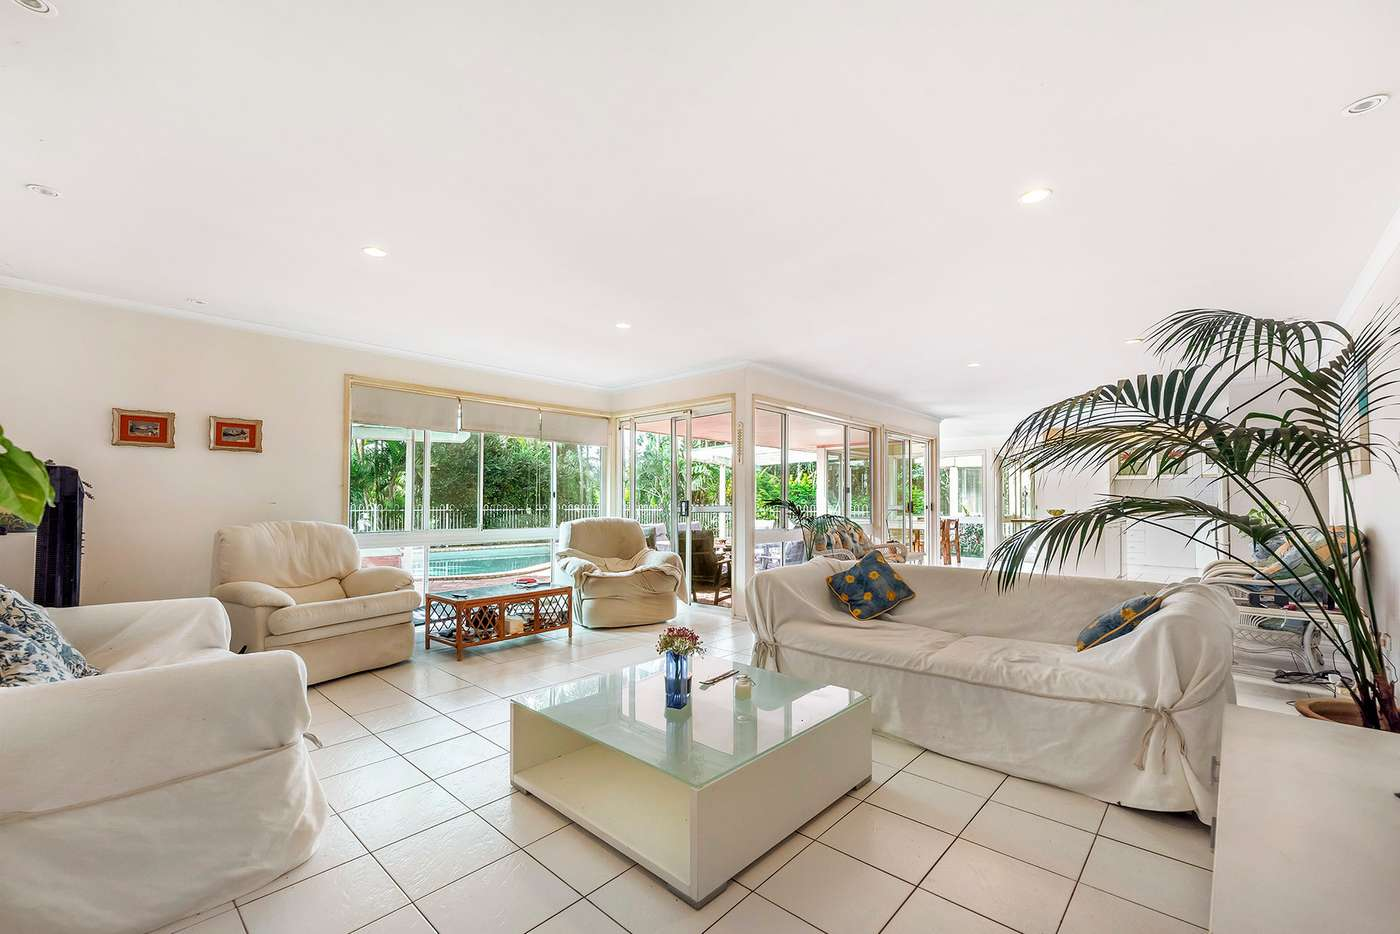 Sixth view of Homely house listing, 32 Piggabeen Road, Currumbin Valley QLD 4223